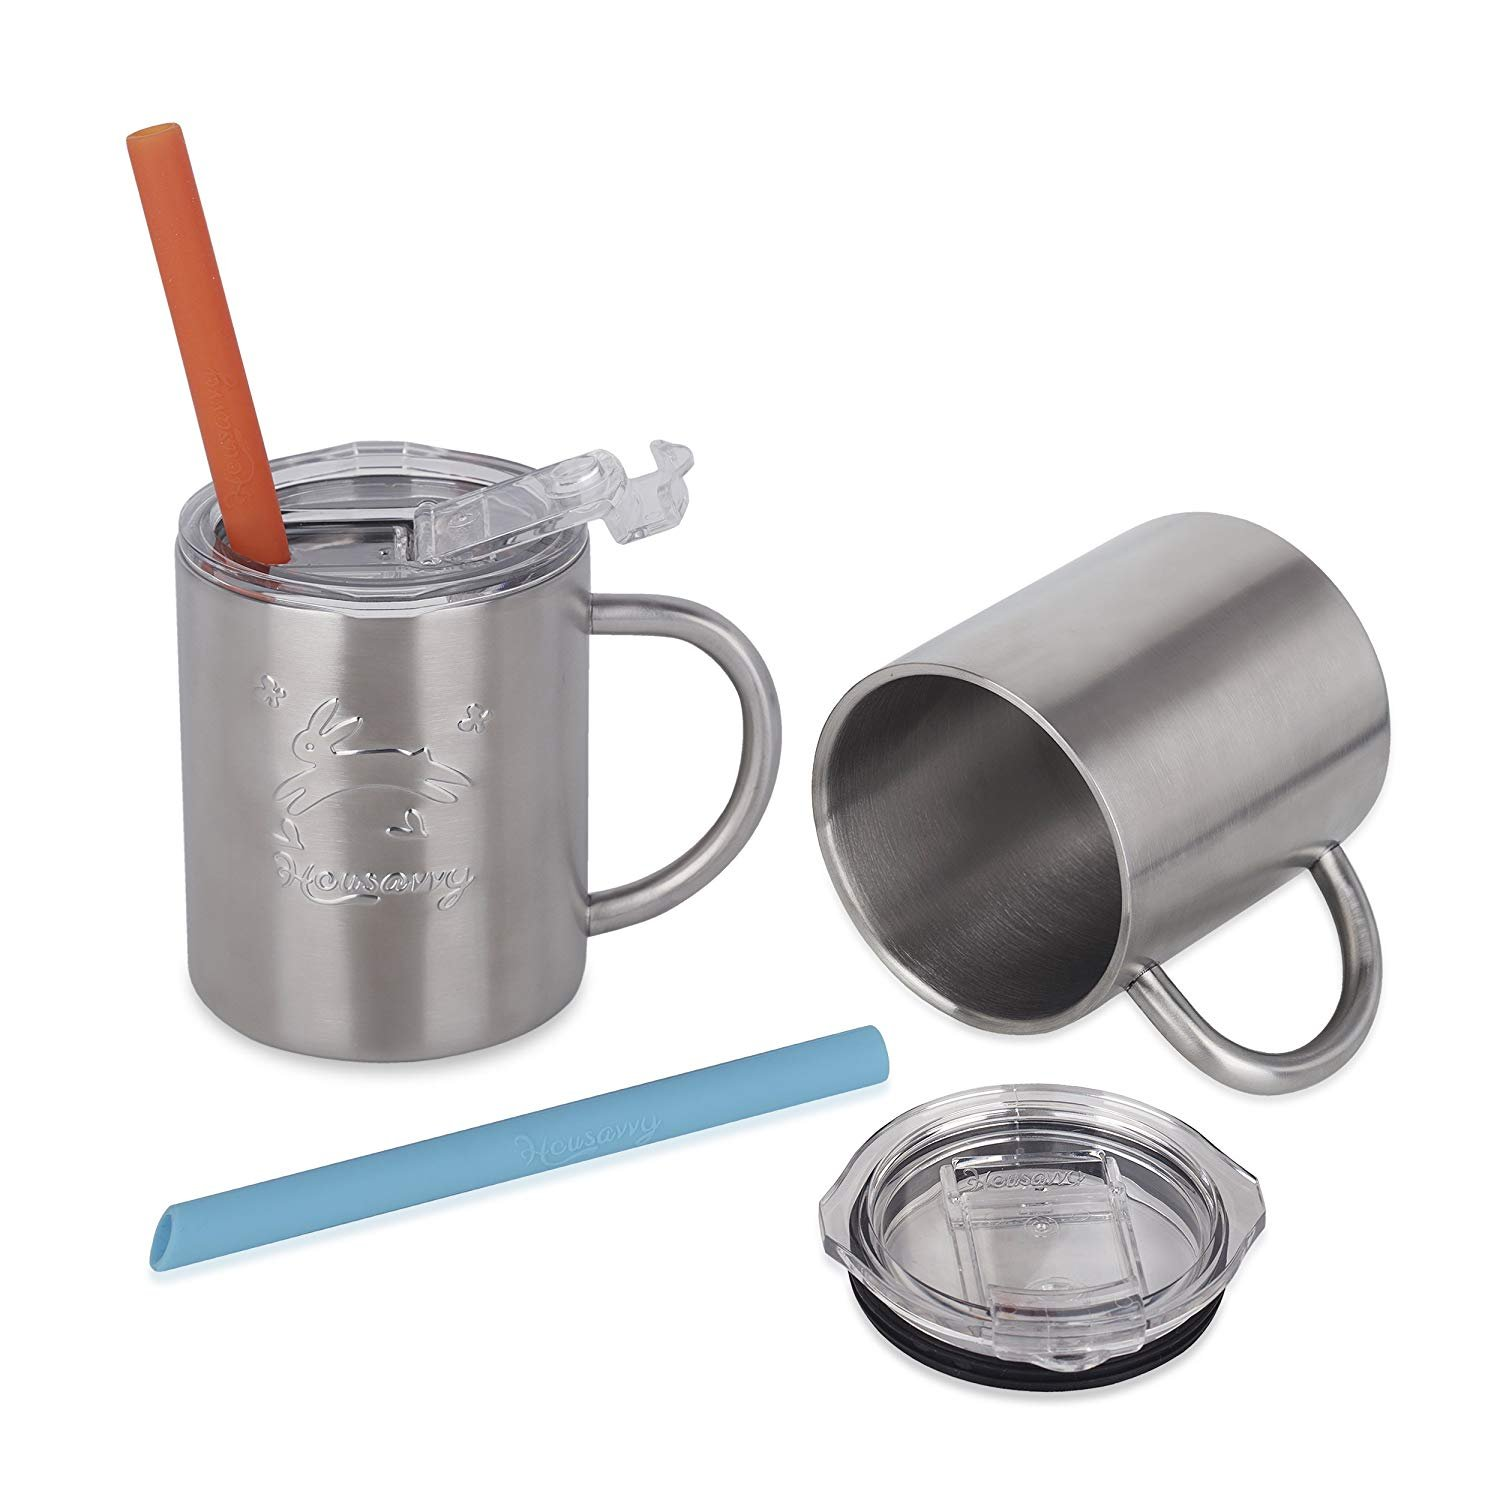 Housavvy 2 Pack of 10 Oz, Duck Stainless Steel Cup Set with Lids and Straws. VY-088